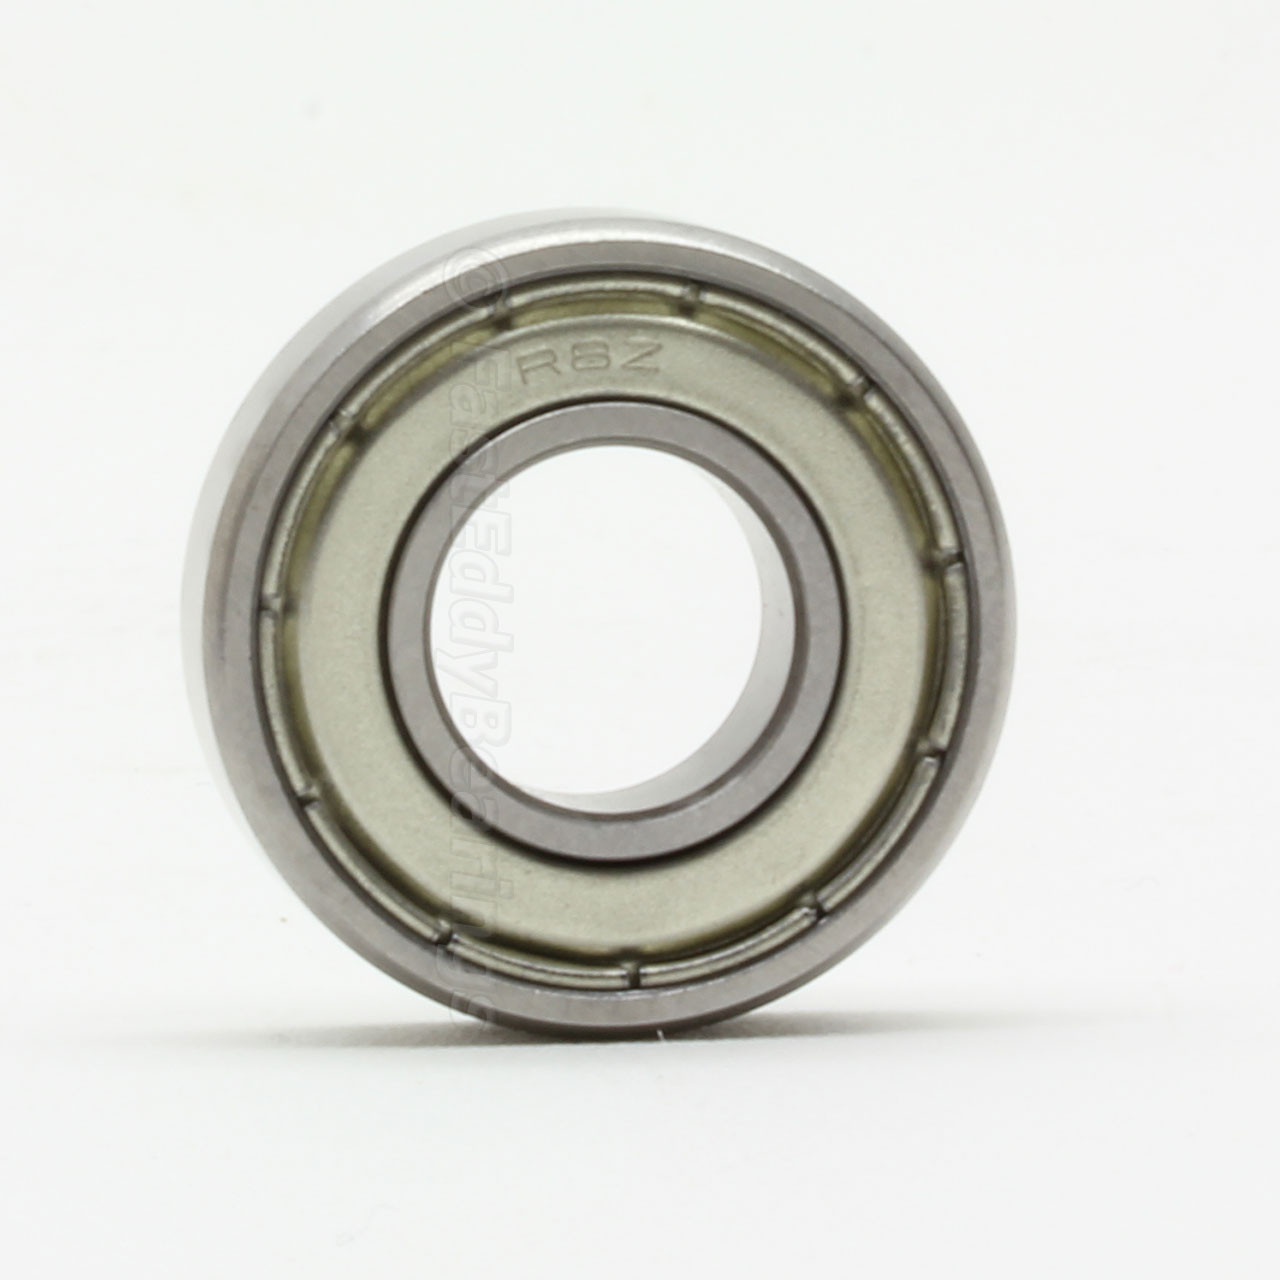 1 8x3 8x5 32 Rubber Sealed Bearing R2 2rs 100